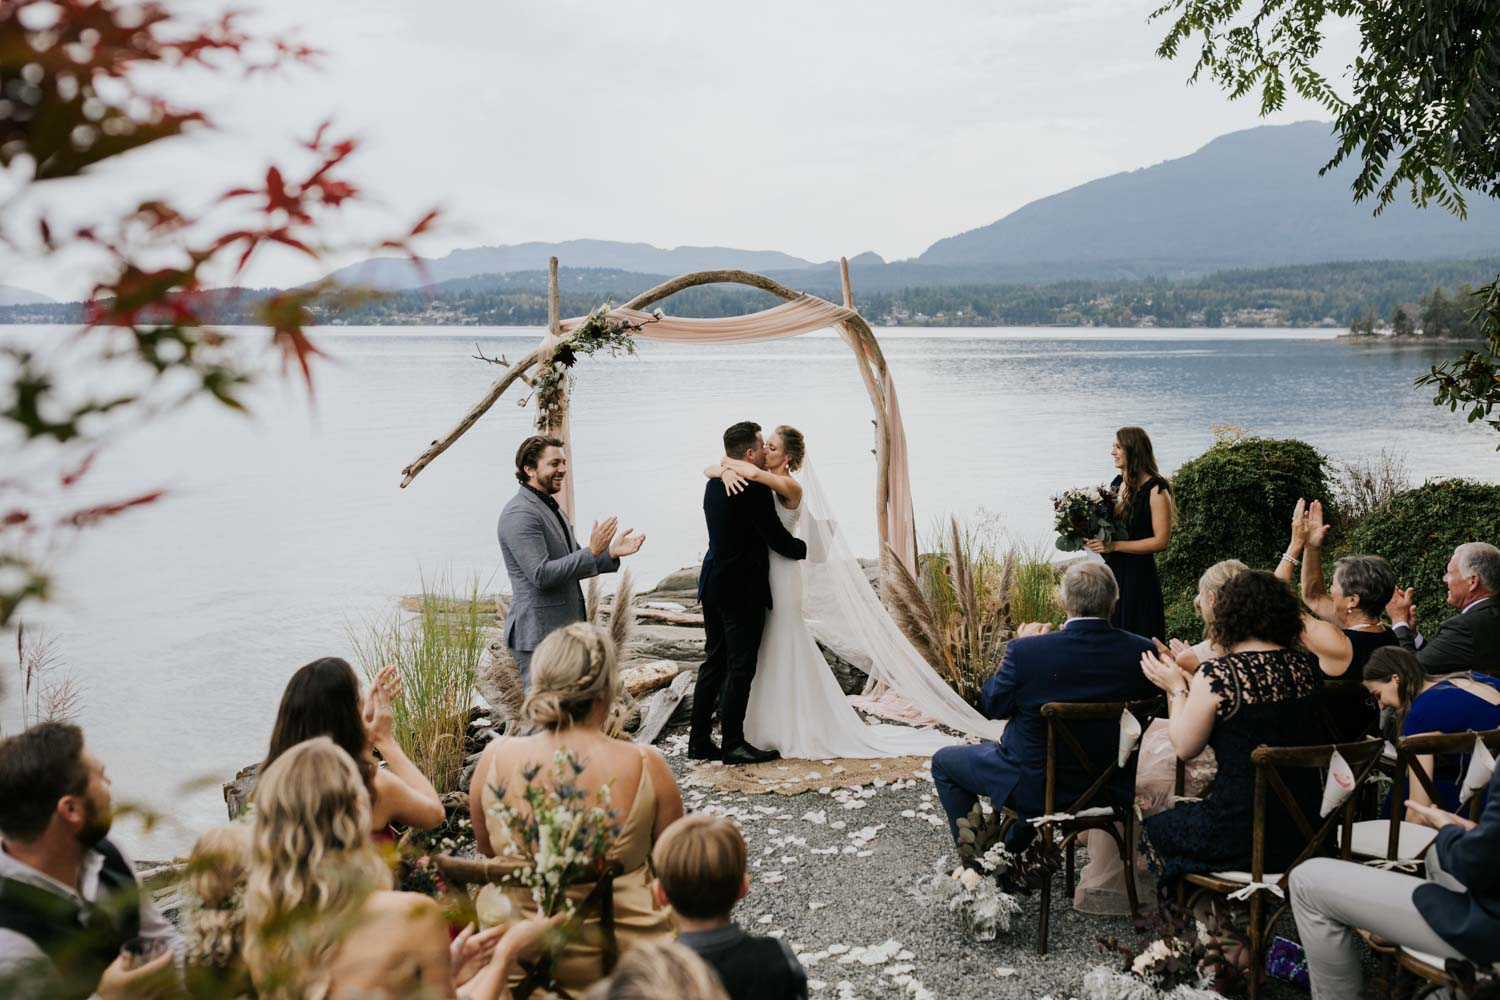 Bride and groom first kiss at the beach on Vancouver Island under wooden arch decorated with dusty pink fabric, raw cotton stems, pampas grass and dried flowers